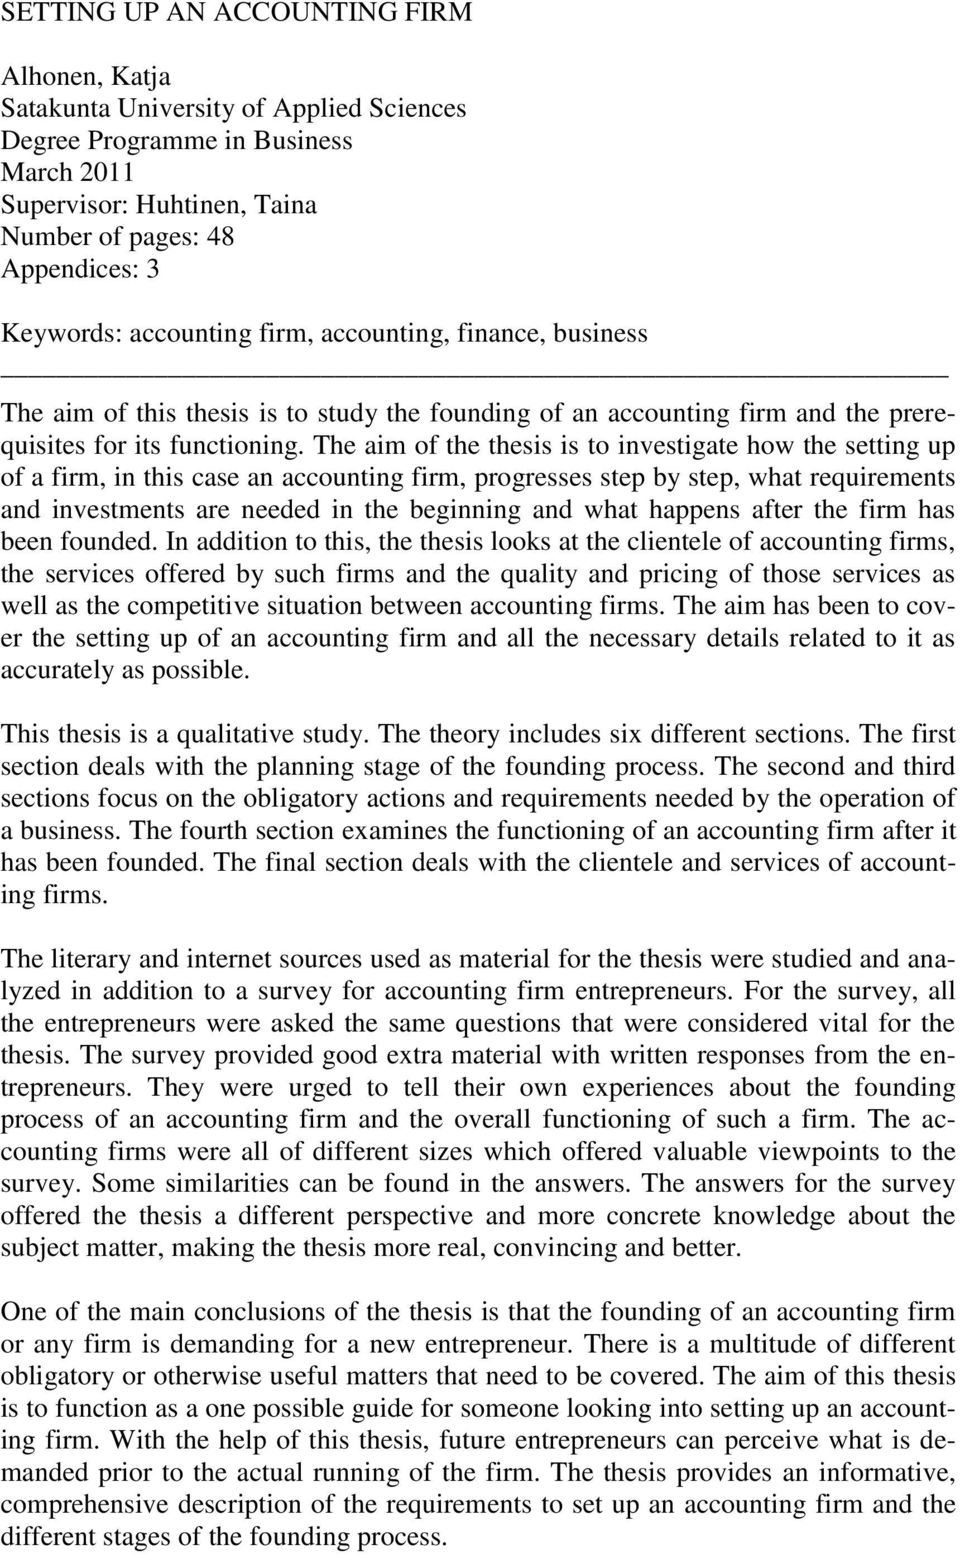 The aim of the thesis is to investigate how the setting up of a firm, in this case an accounting firm, progresses step by step, what requirements and investments are needed in the beginning and what